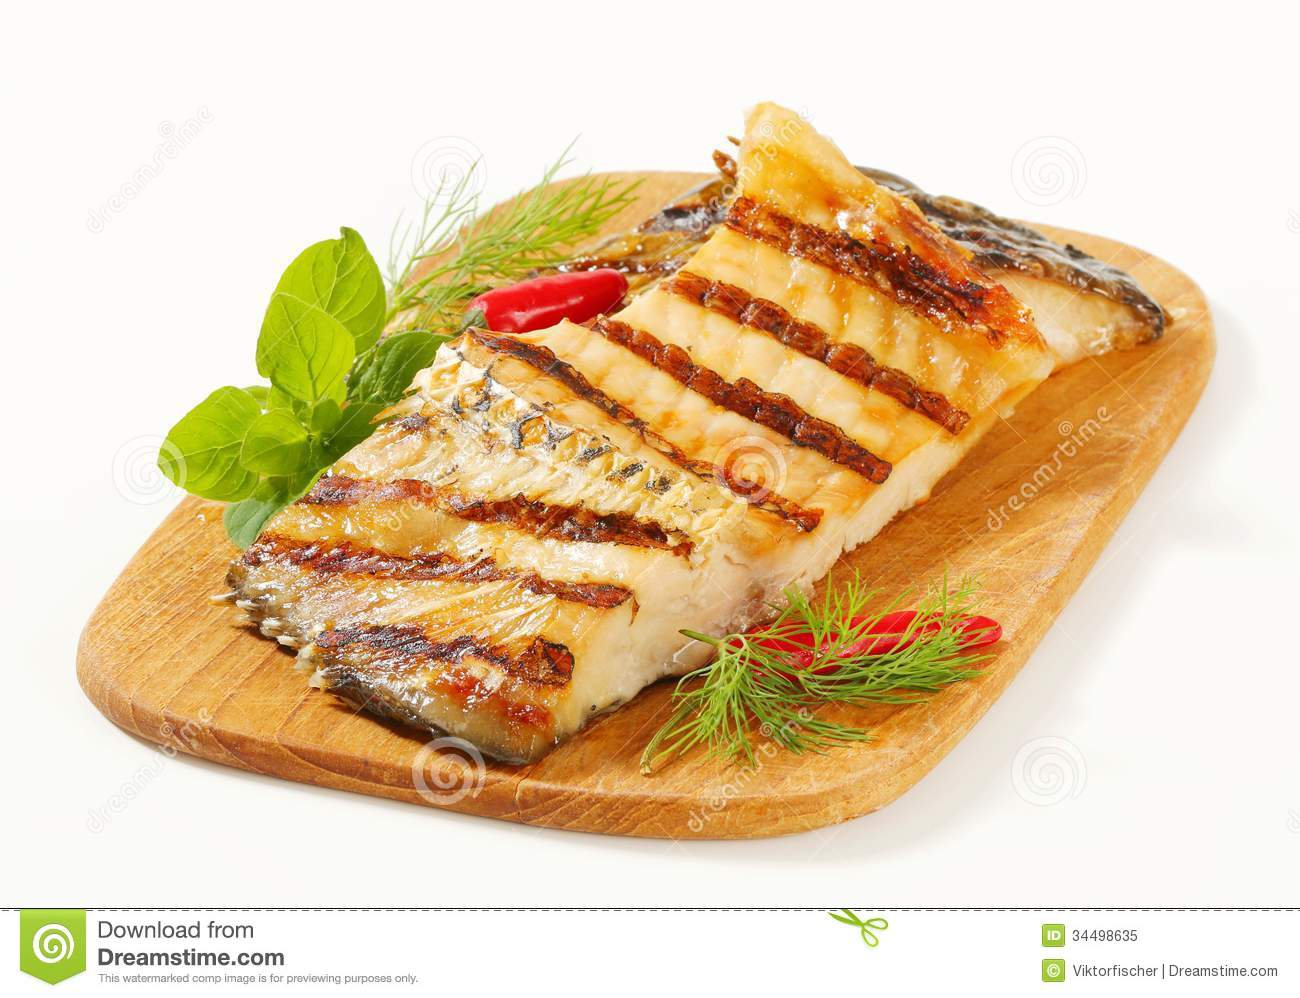 how to cook fish fillet on grill